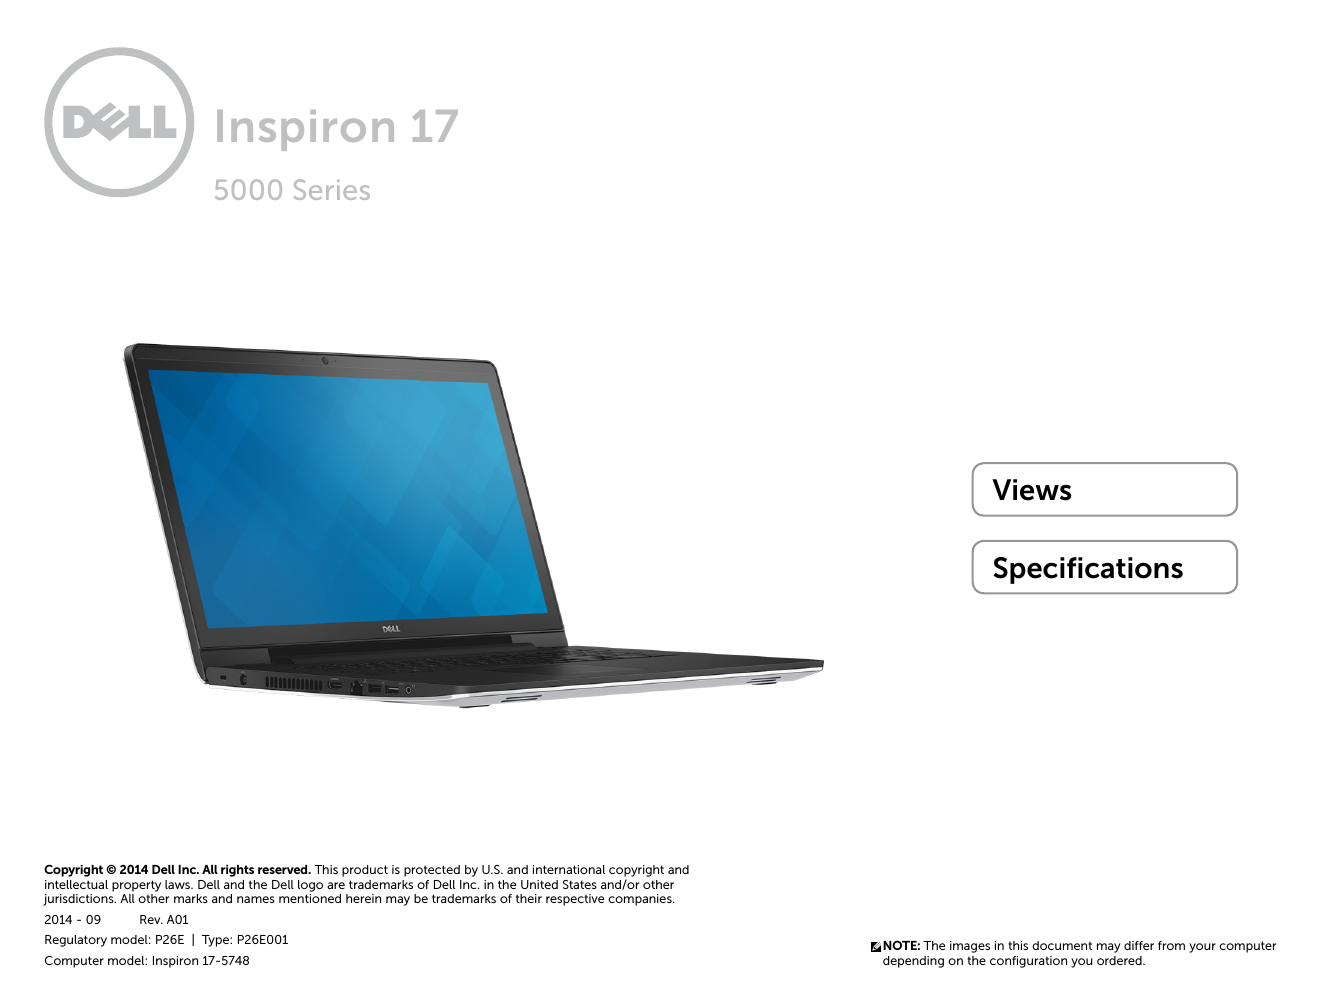 Dell Inspiron 17 5748 Owner's Manual 93 pages · Dell Inspiron 17 5748  Specifications